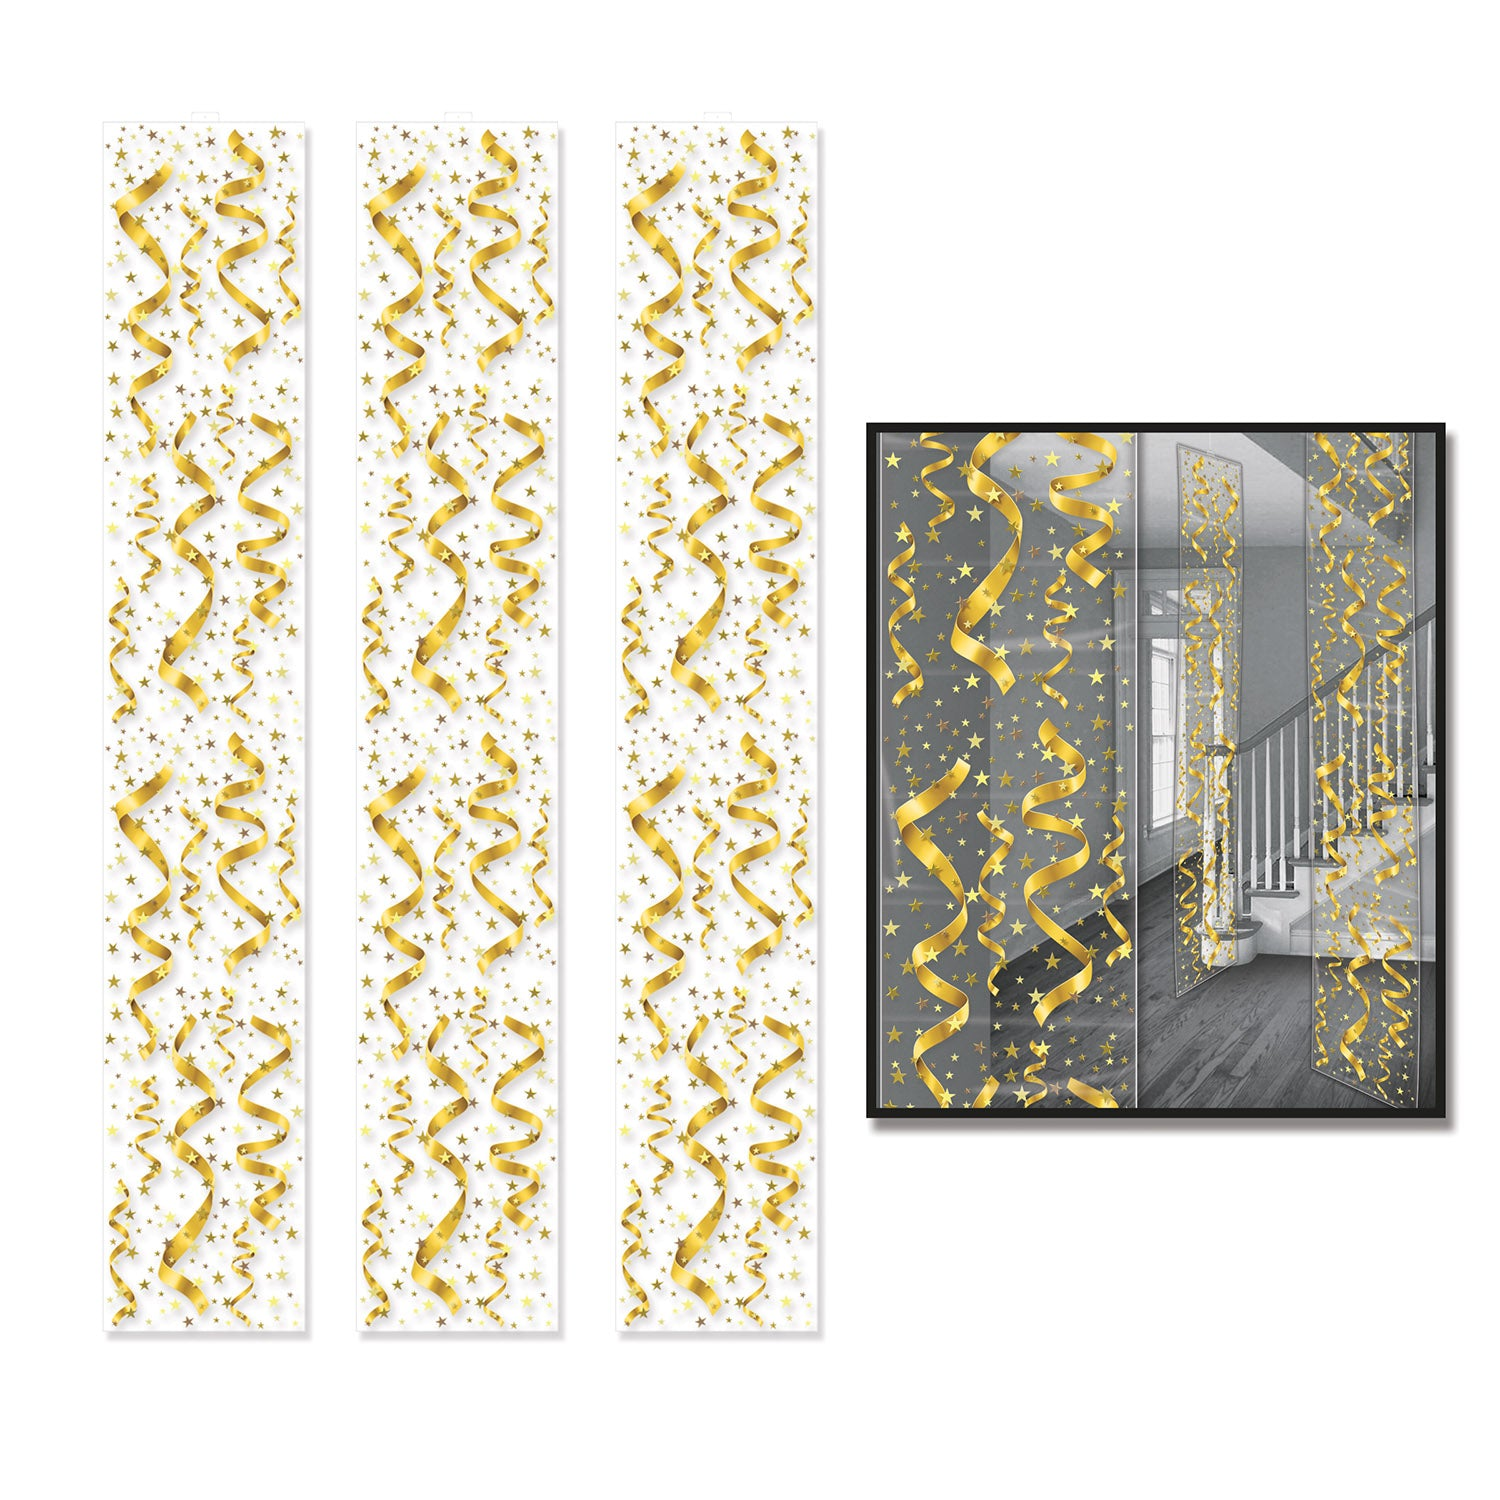 Serps & Confetti Party Panels (3/Pkg) by Beistle - New Year's Eve Theme Decorations